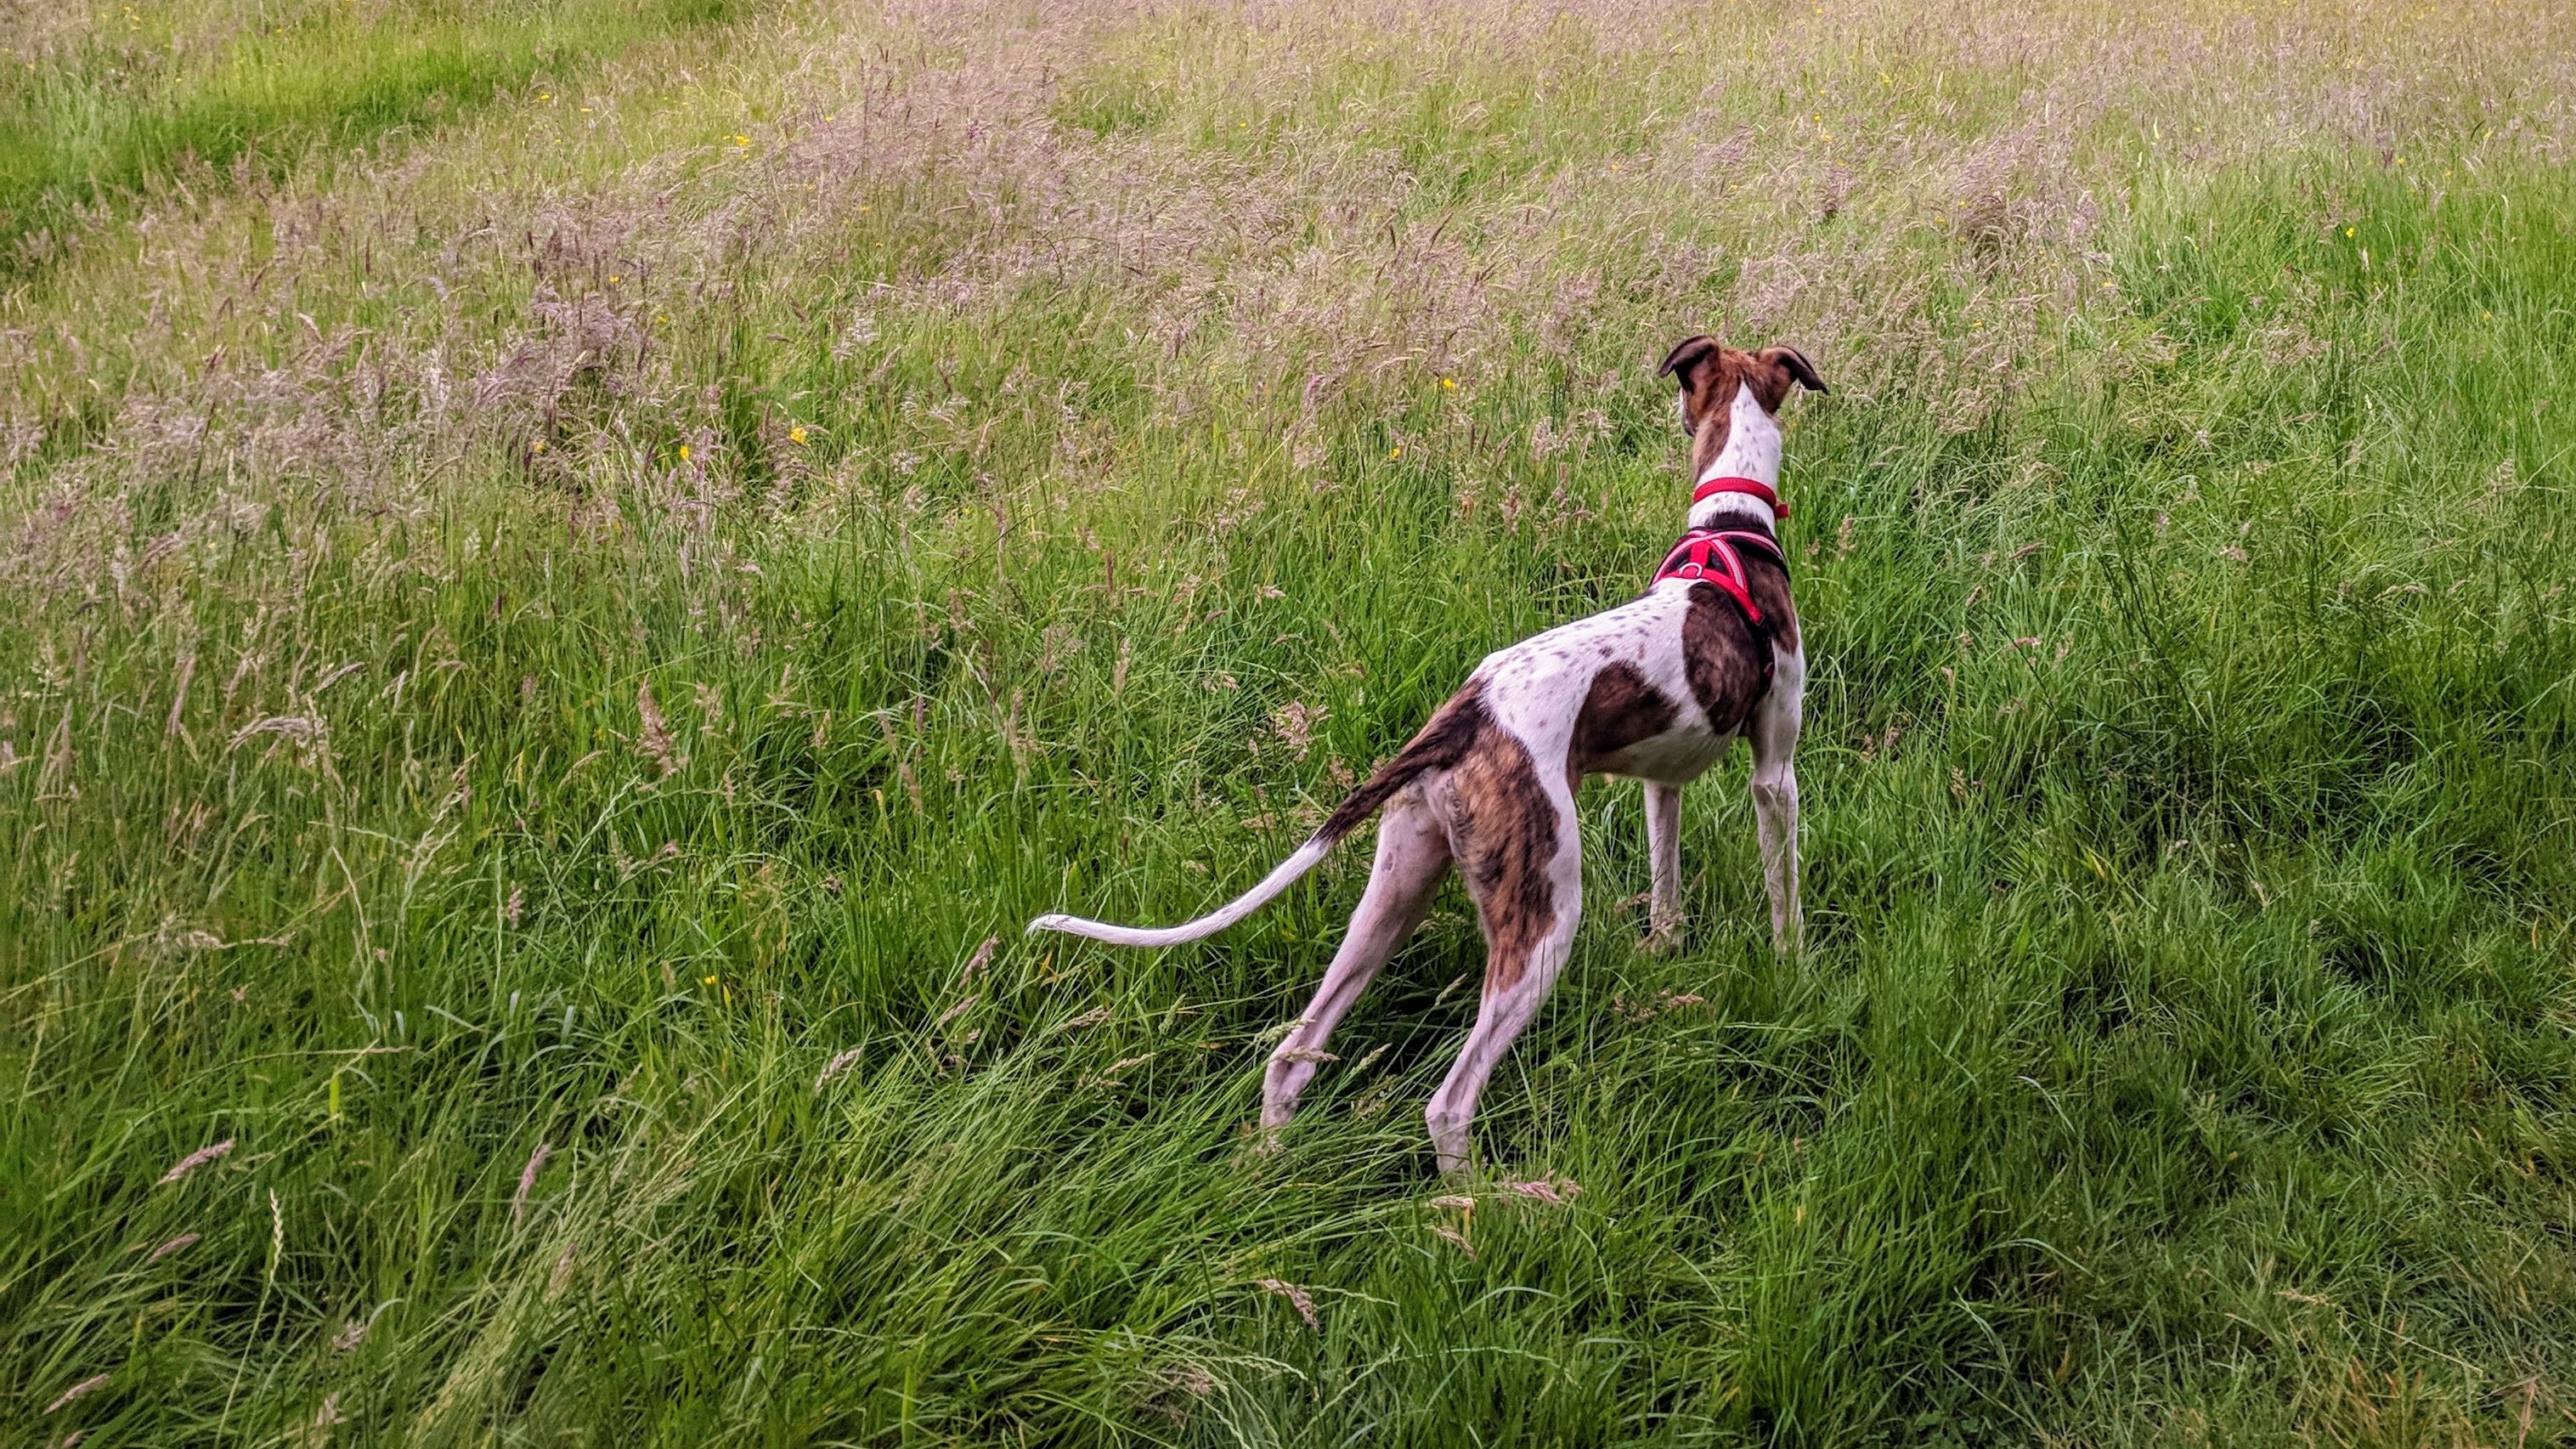 short-coated white and brown dog standing on green lawn grasses